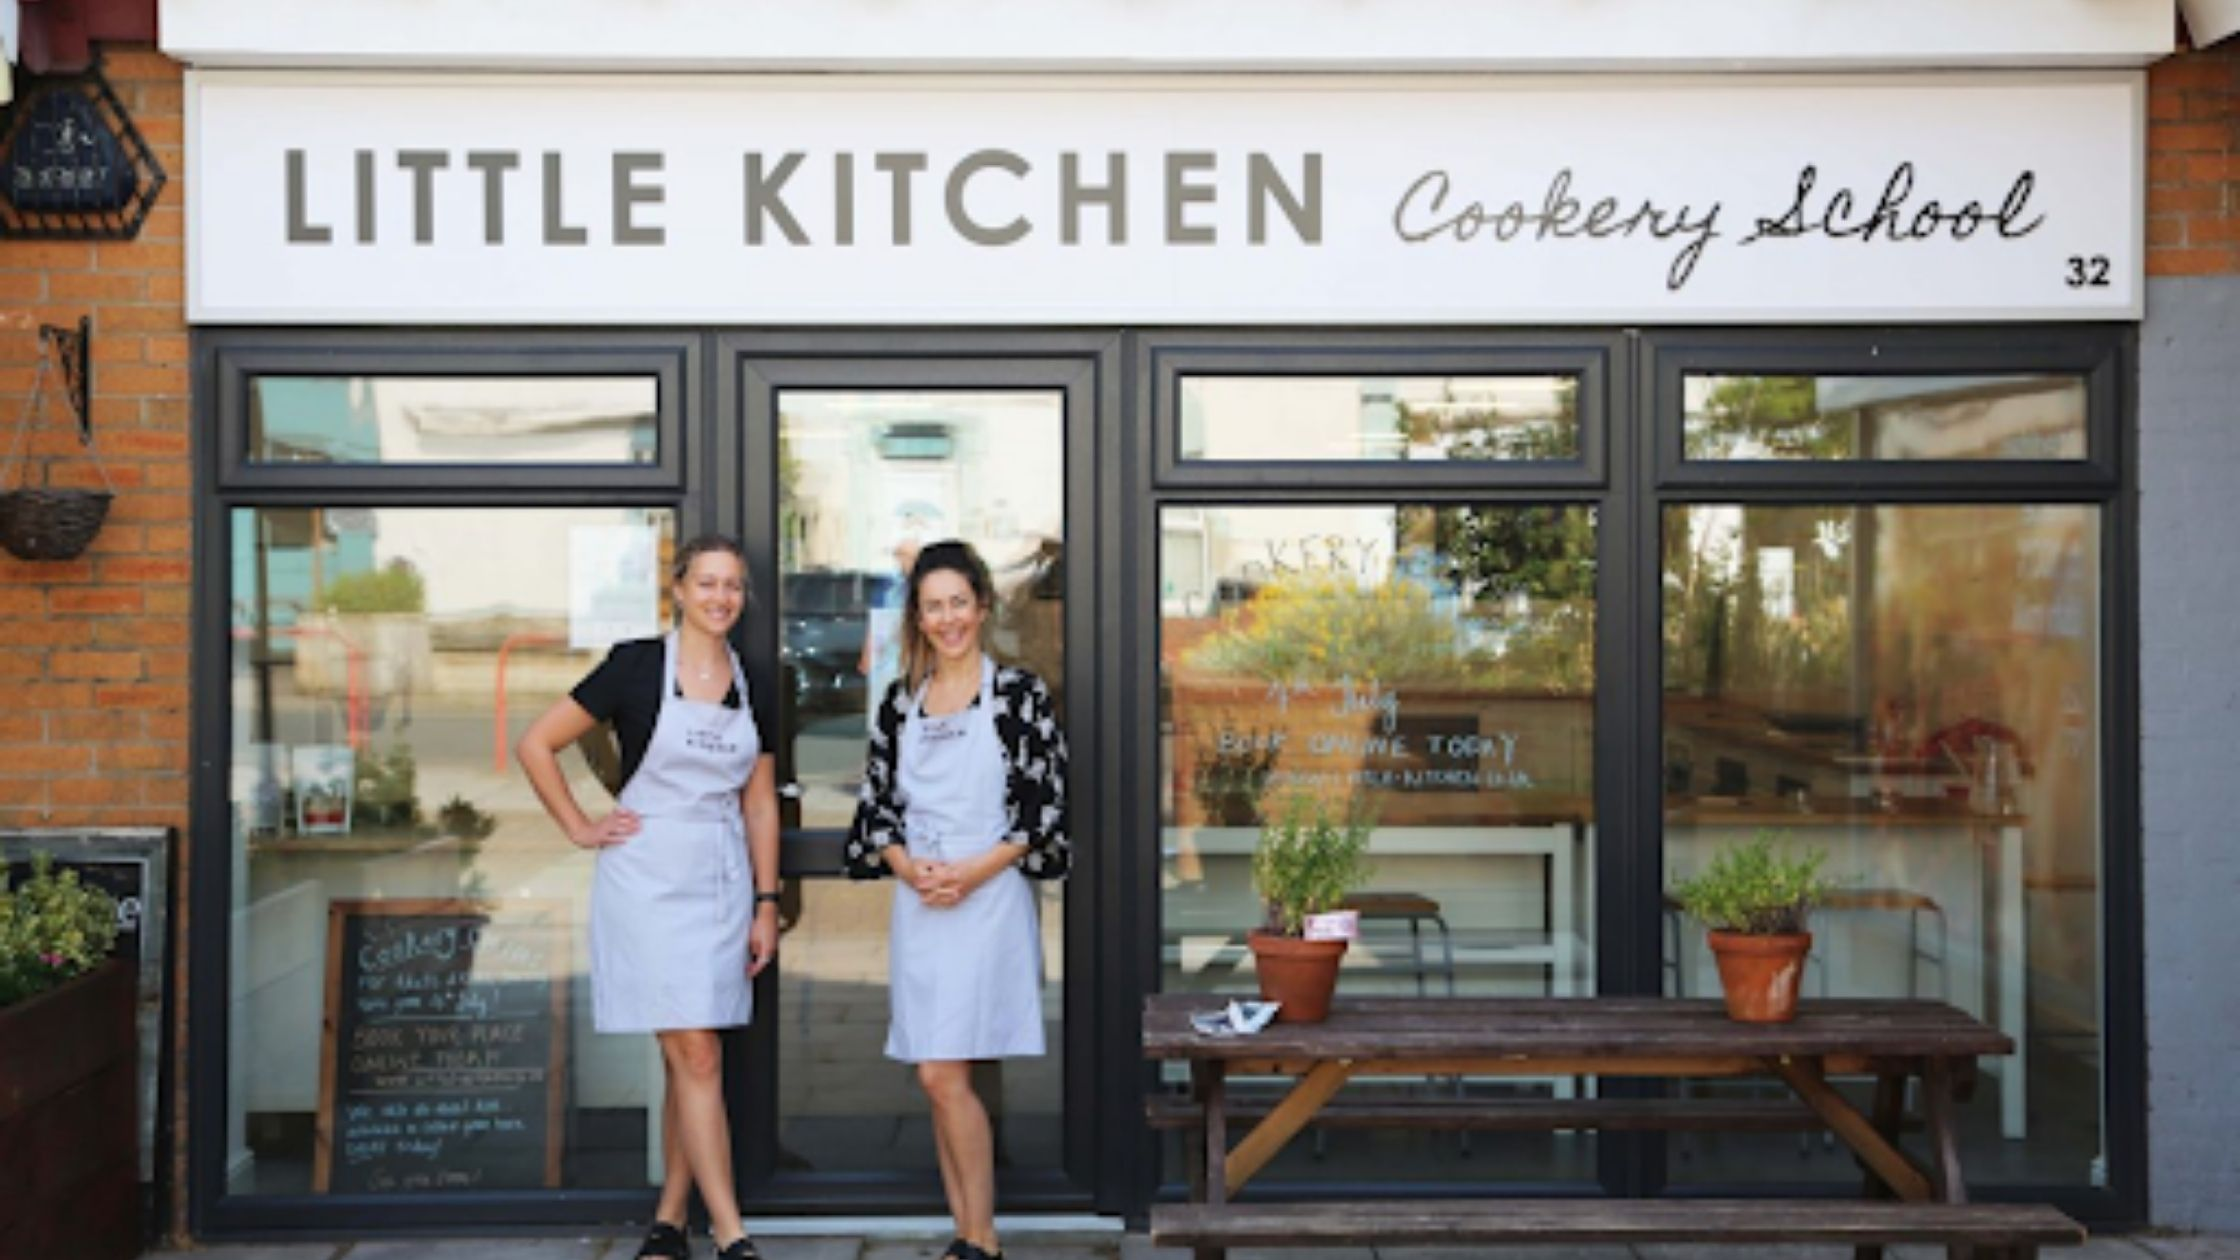 Claire and Madeleine in front of the Little Kitchen cookery school